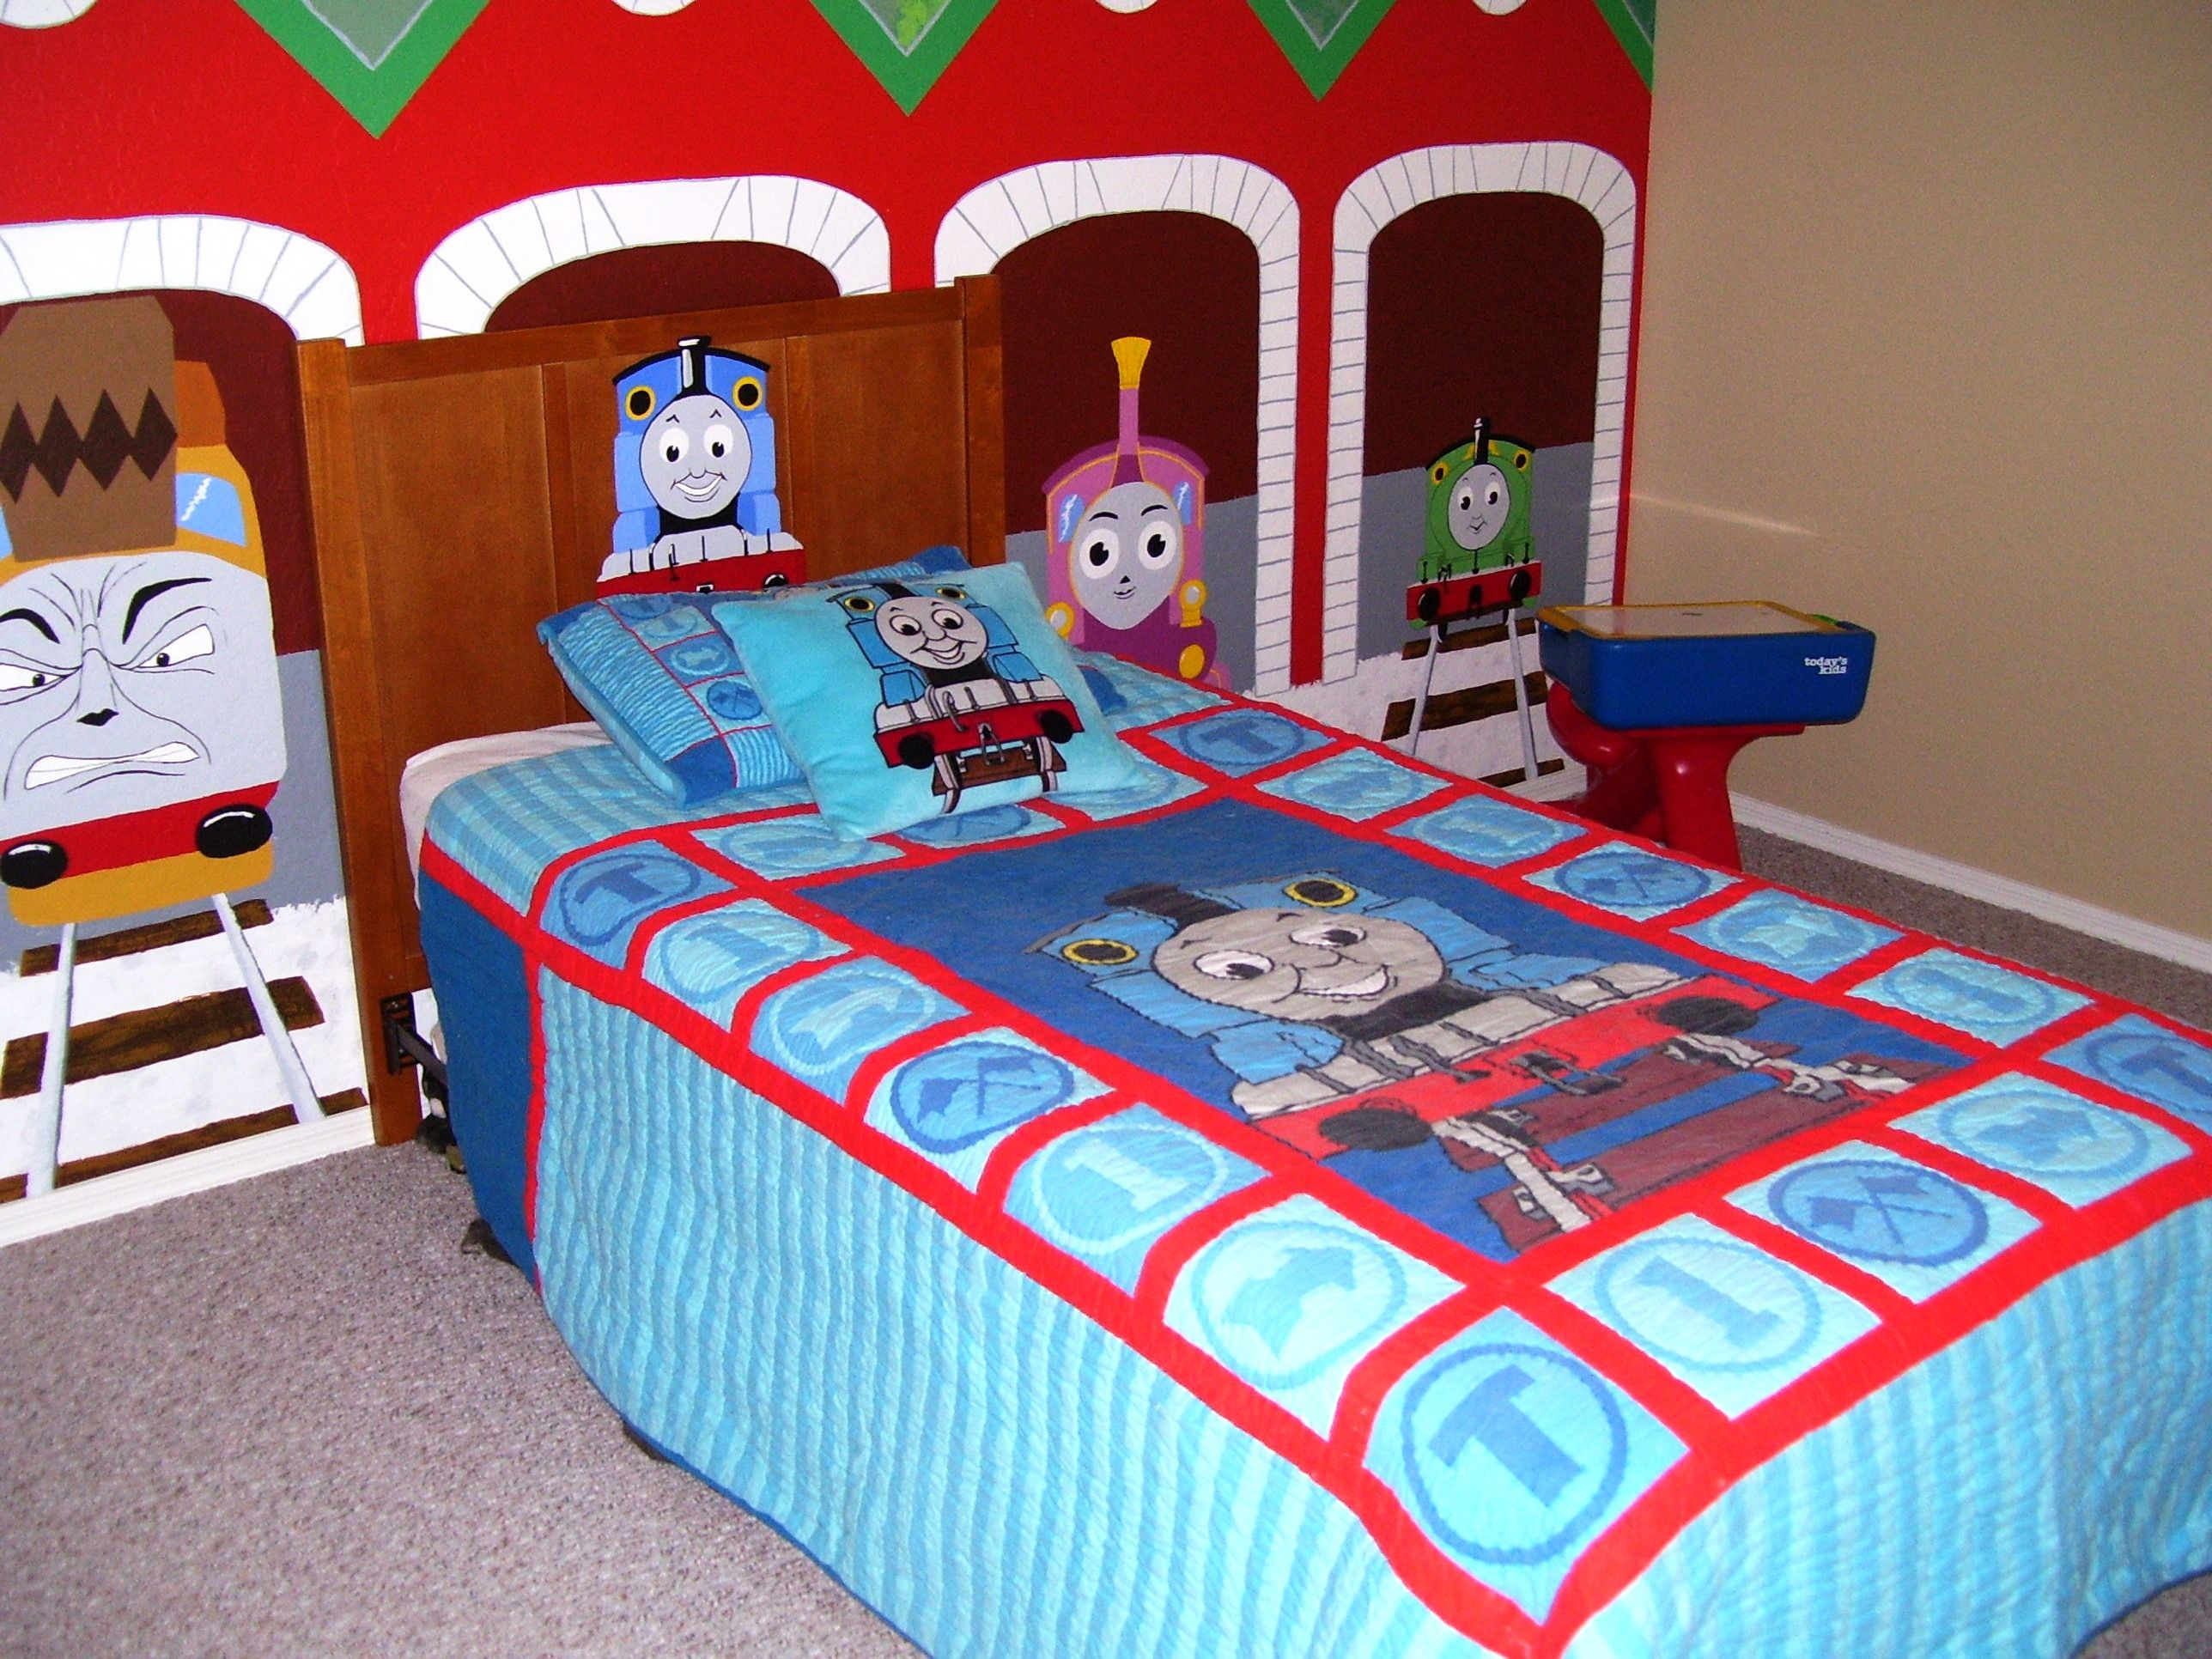 Thomas The Train Decorations For Bedroom Interior Paint Color